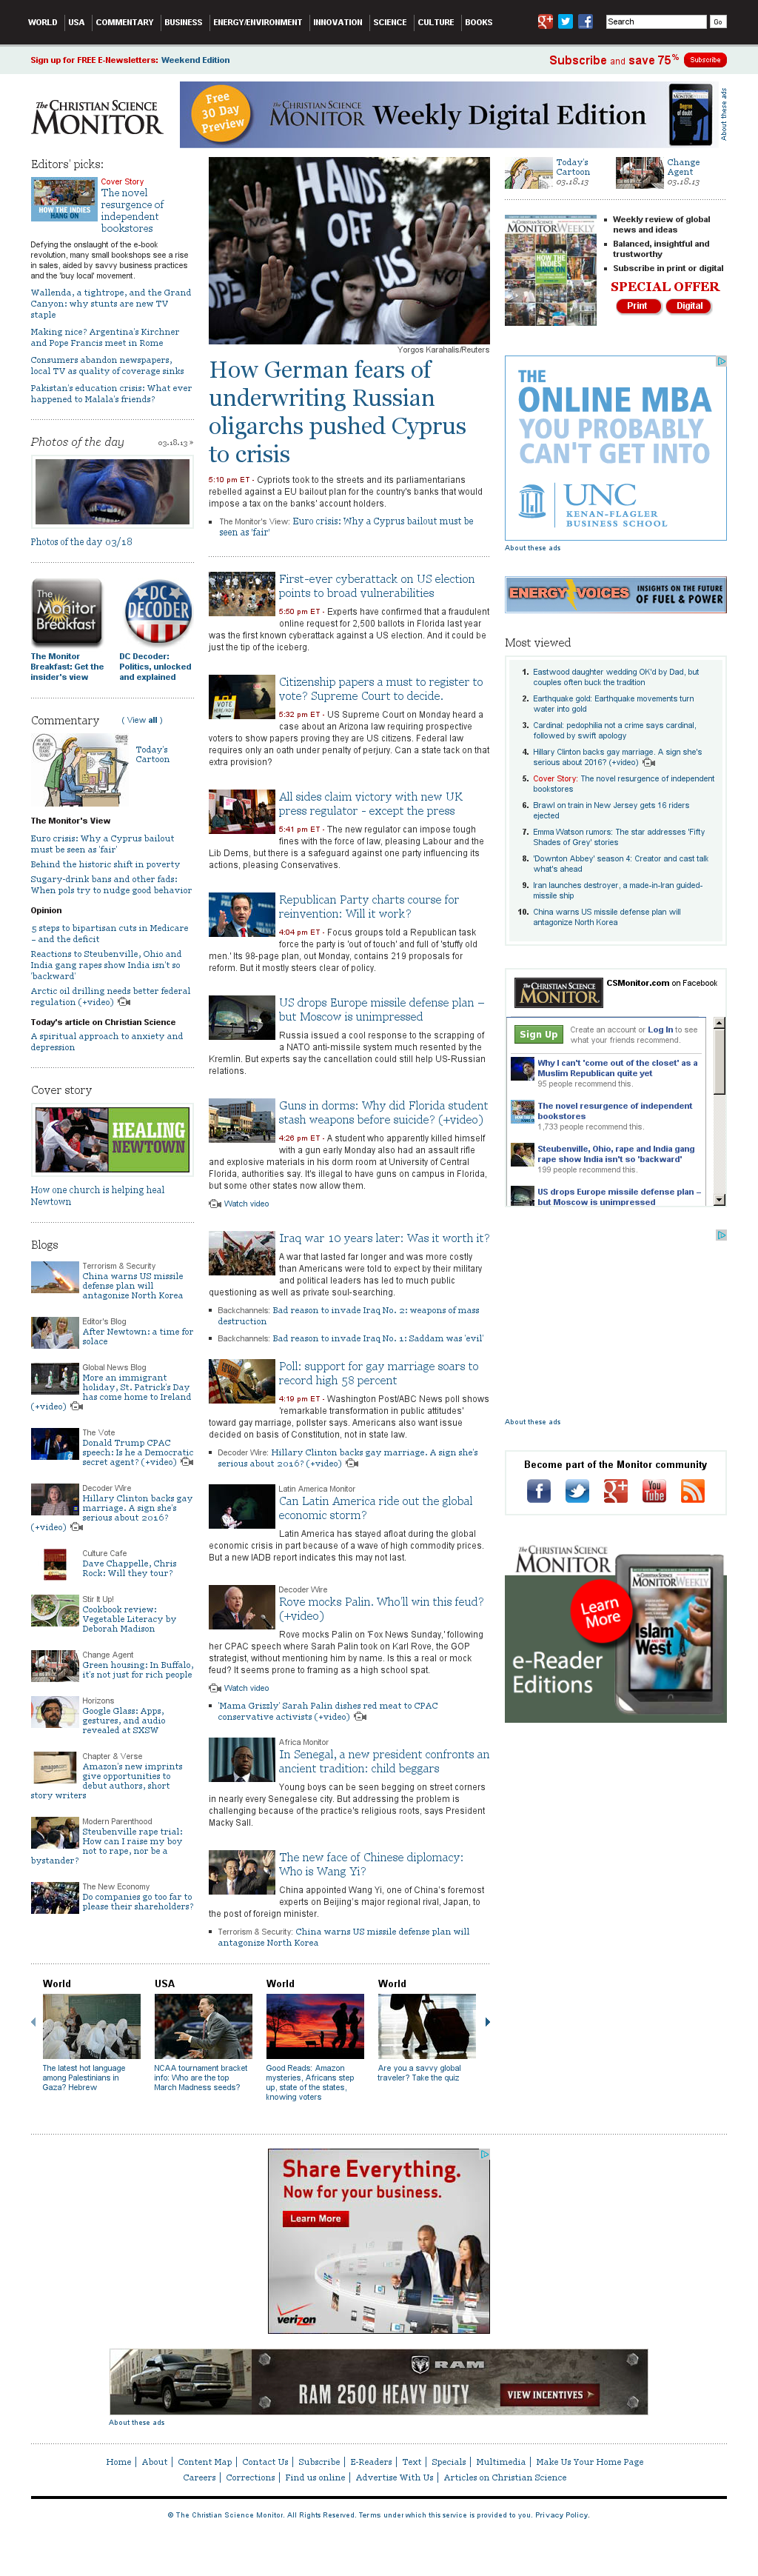 The Christian Science Monitor at Monday March 18, 2013, 11:03 p.m. UTC